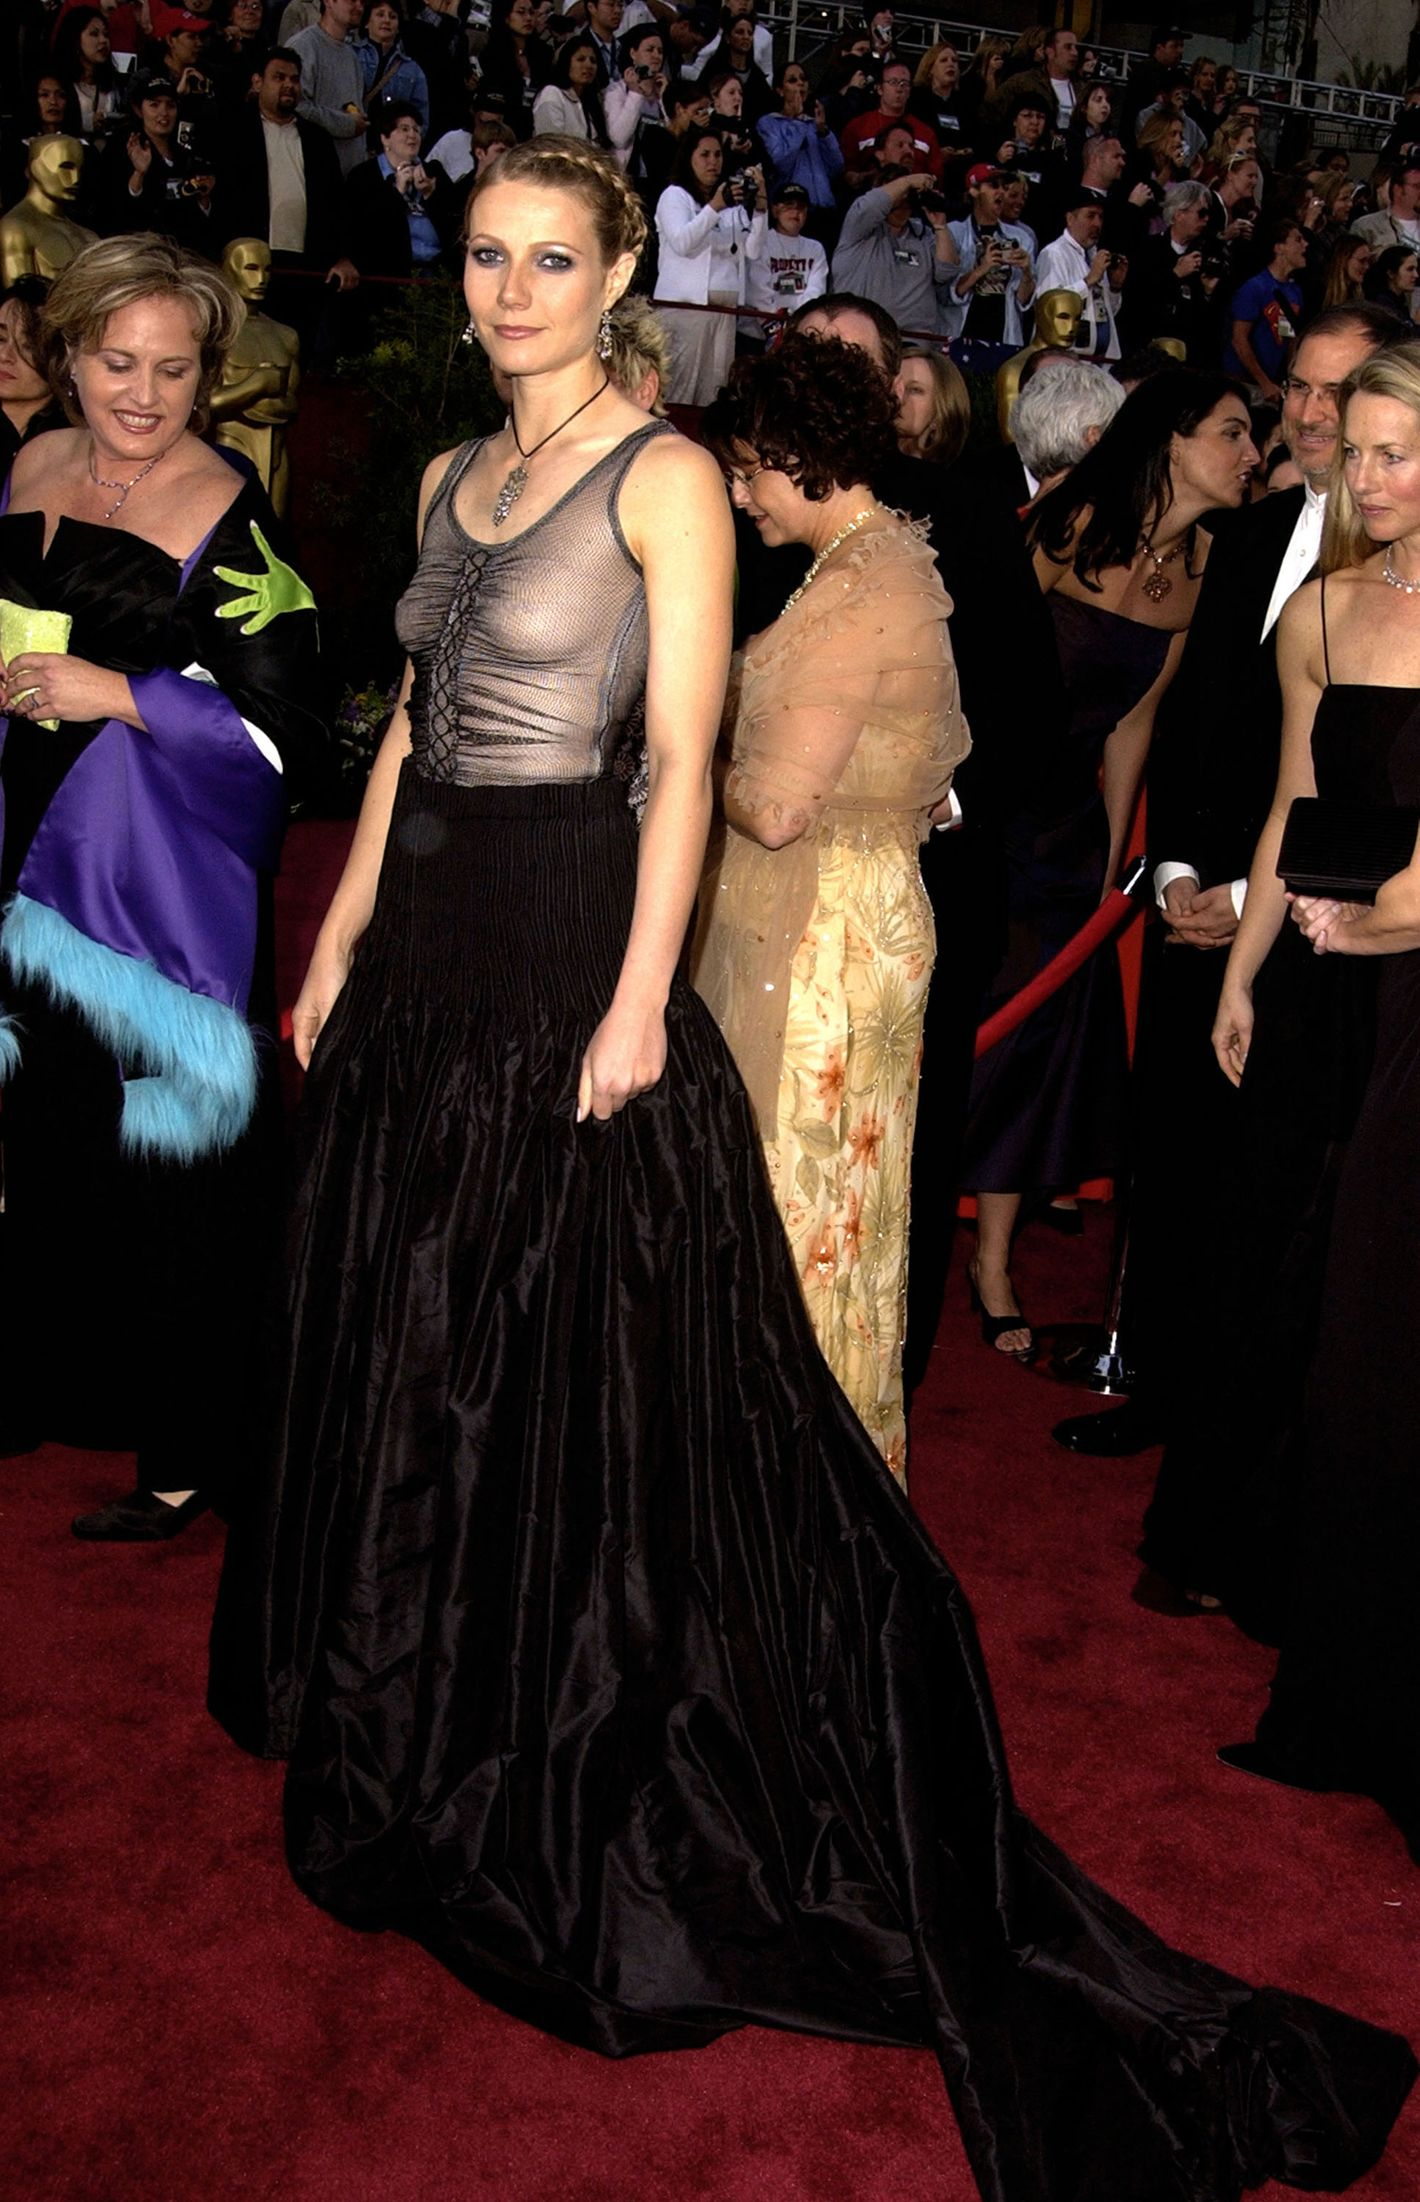 b8cd152e075b The 20 Best, Most Memorable Oscar Looks of All Time